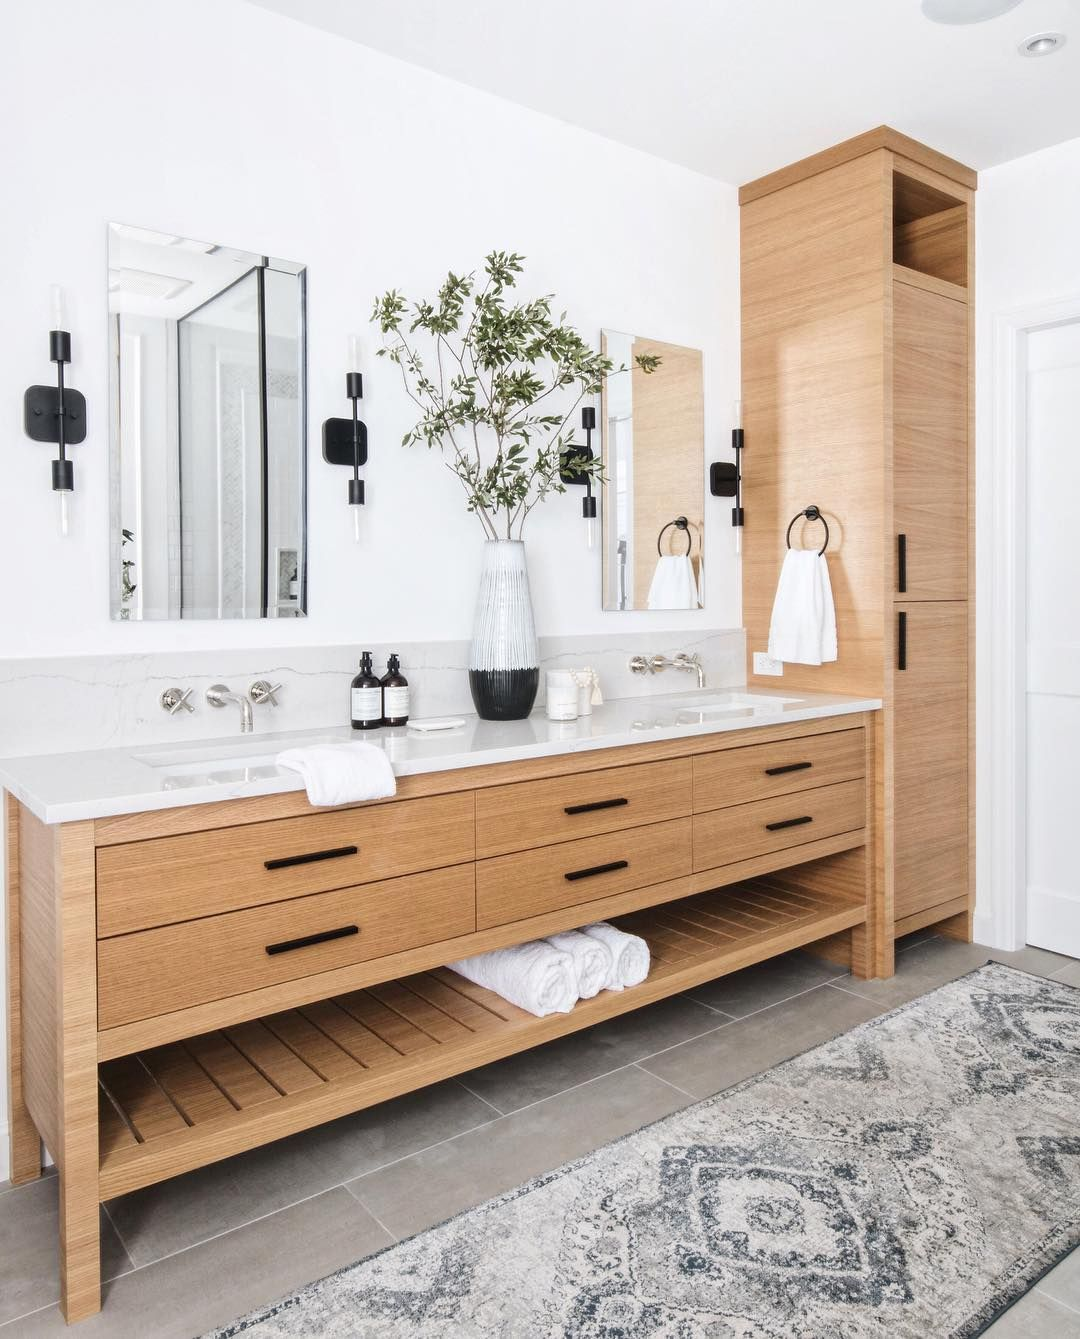 Beautiful Bathroom With Light Wood Vanity With Legs And Matching Linen Tower Love The Matte Black Bathrooms Remodel Bathroom Styling Bathroom Interior Design